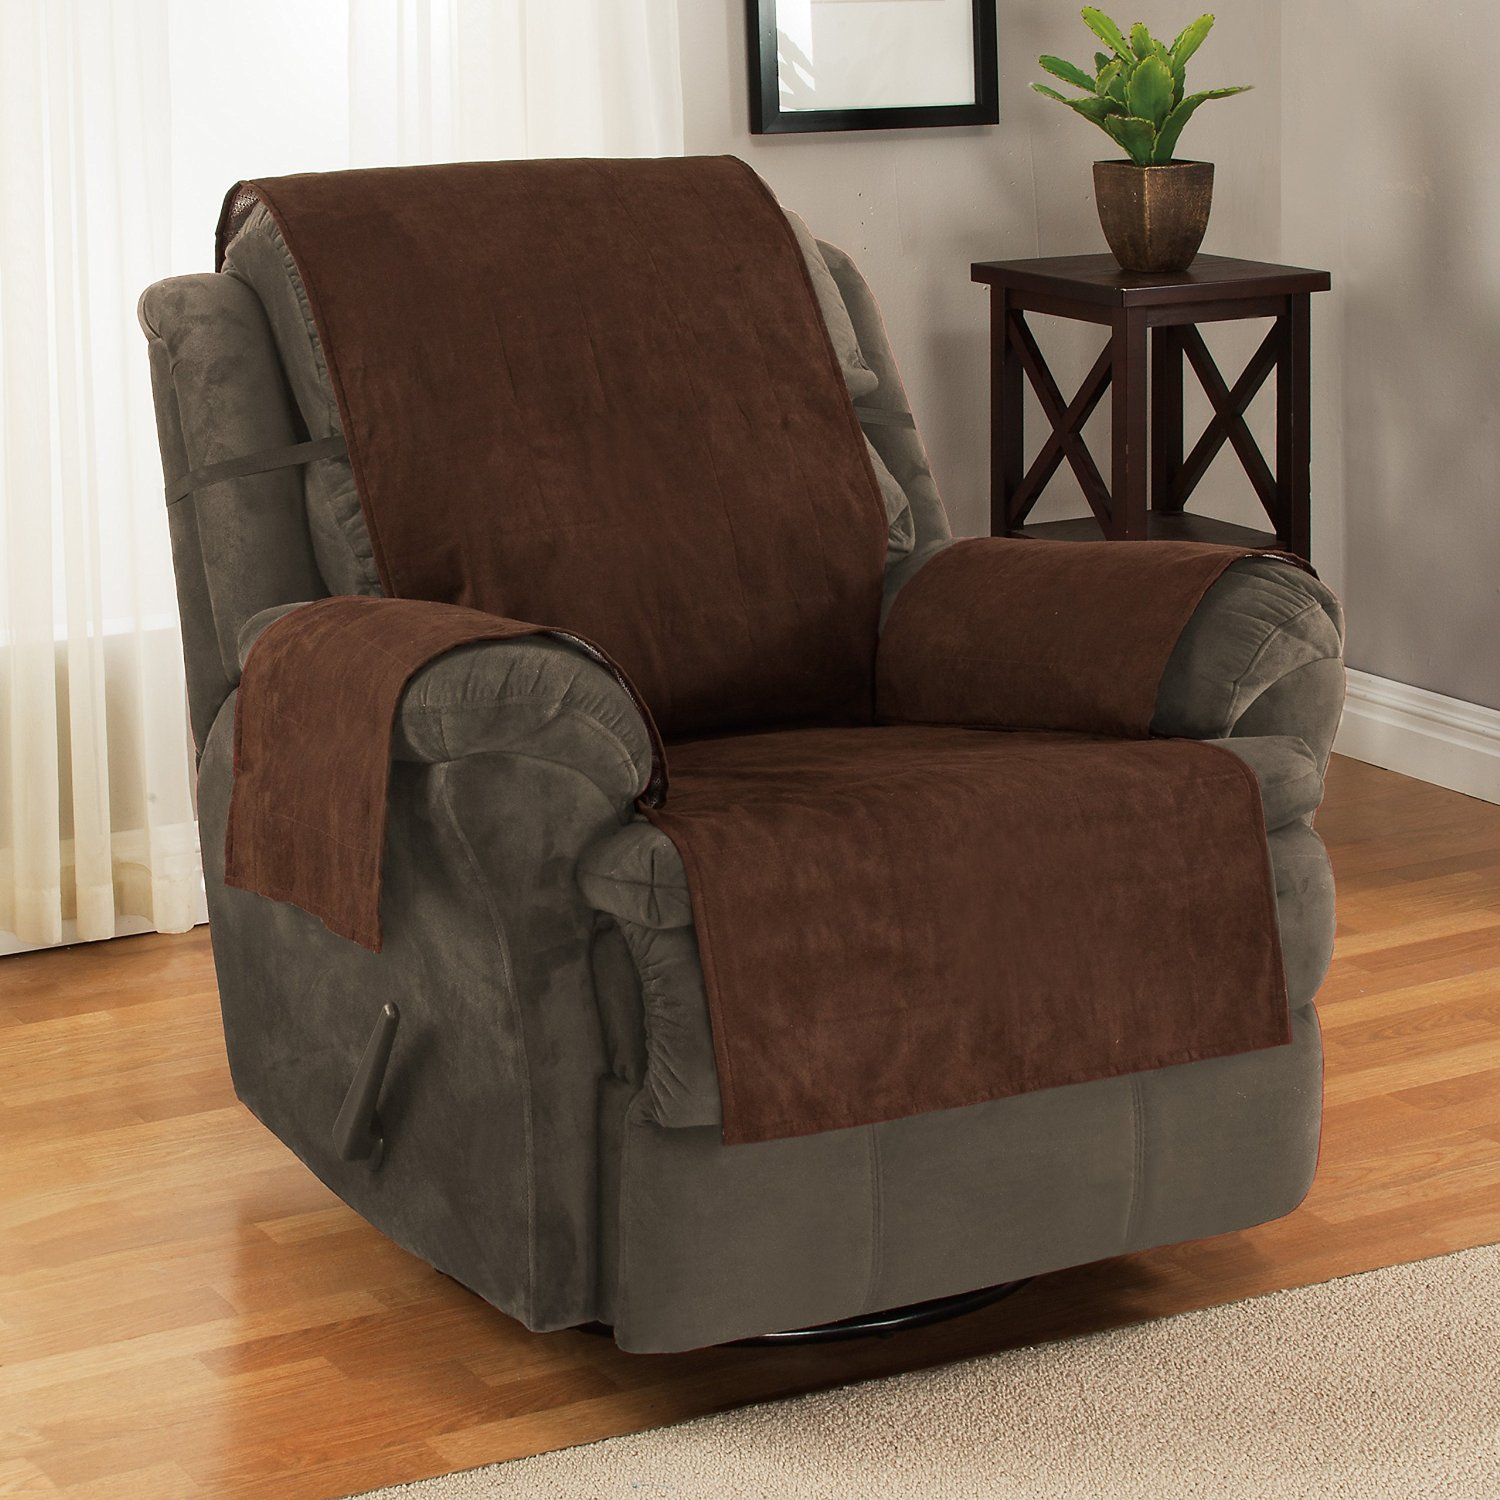 Best Lazyboy Gift This Holiday Lazyboyreclinersonline Com